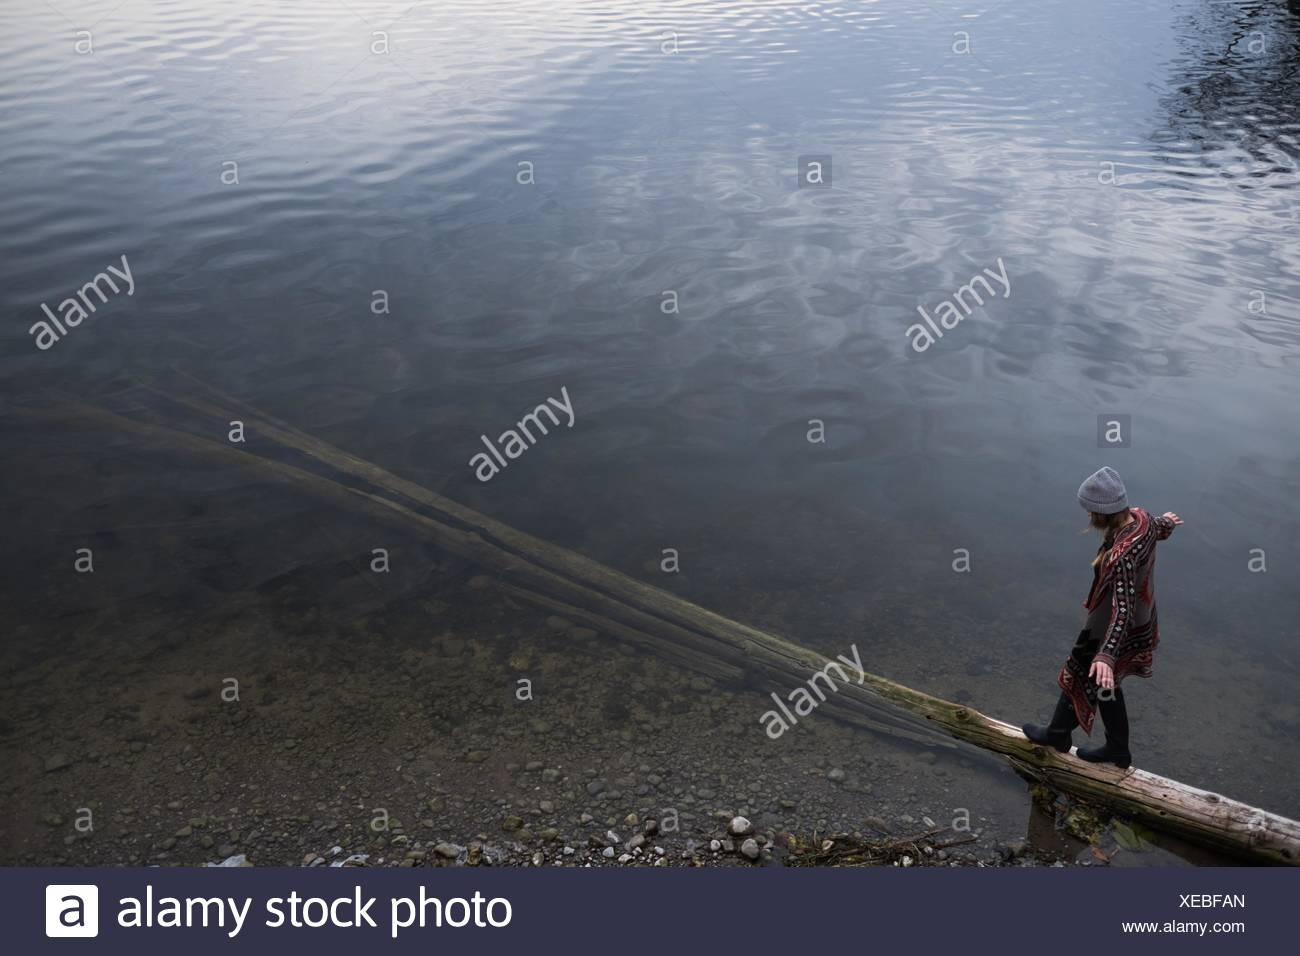 Woman balancing on fallen tree trunk in lake - Stock Image